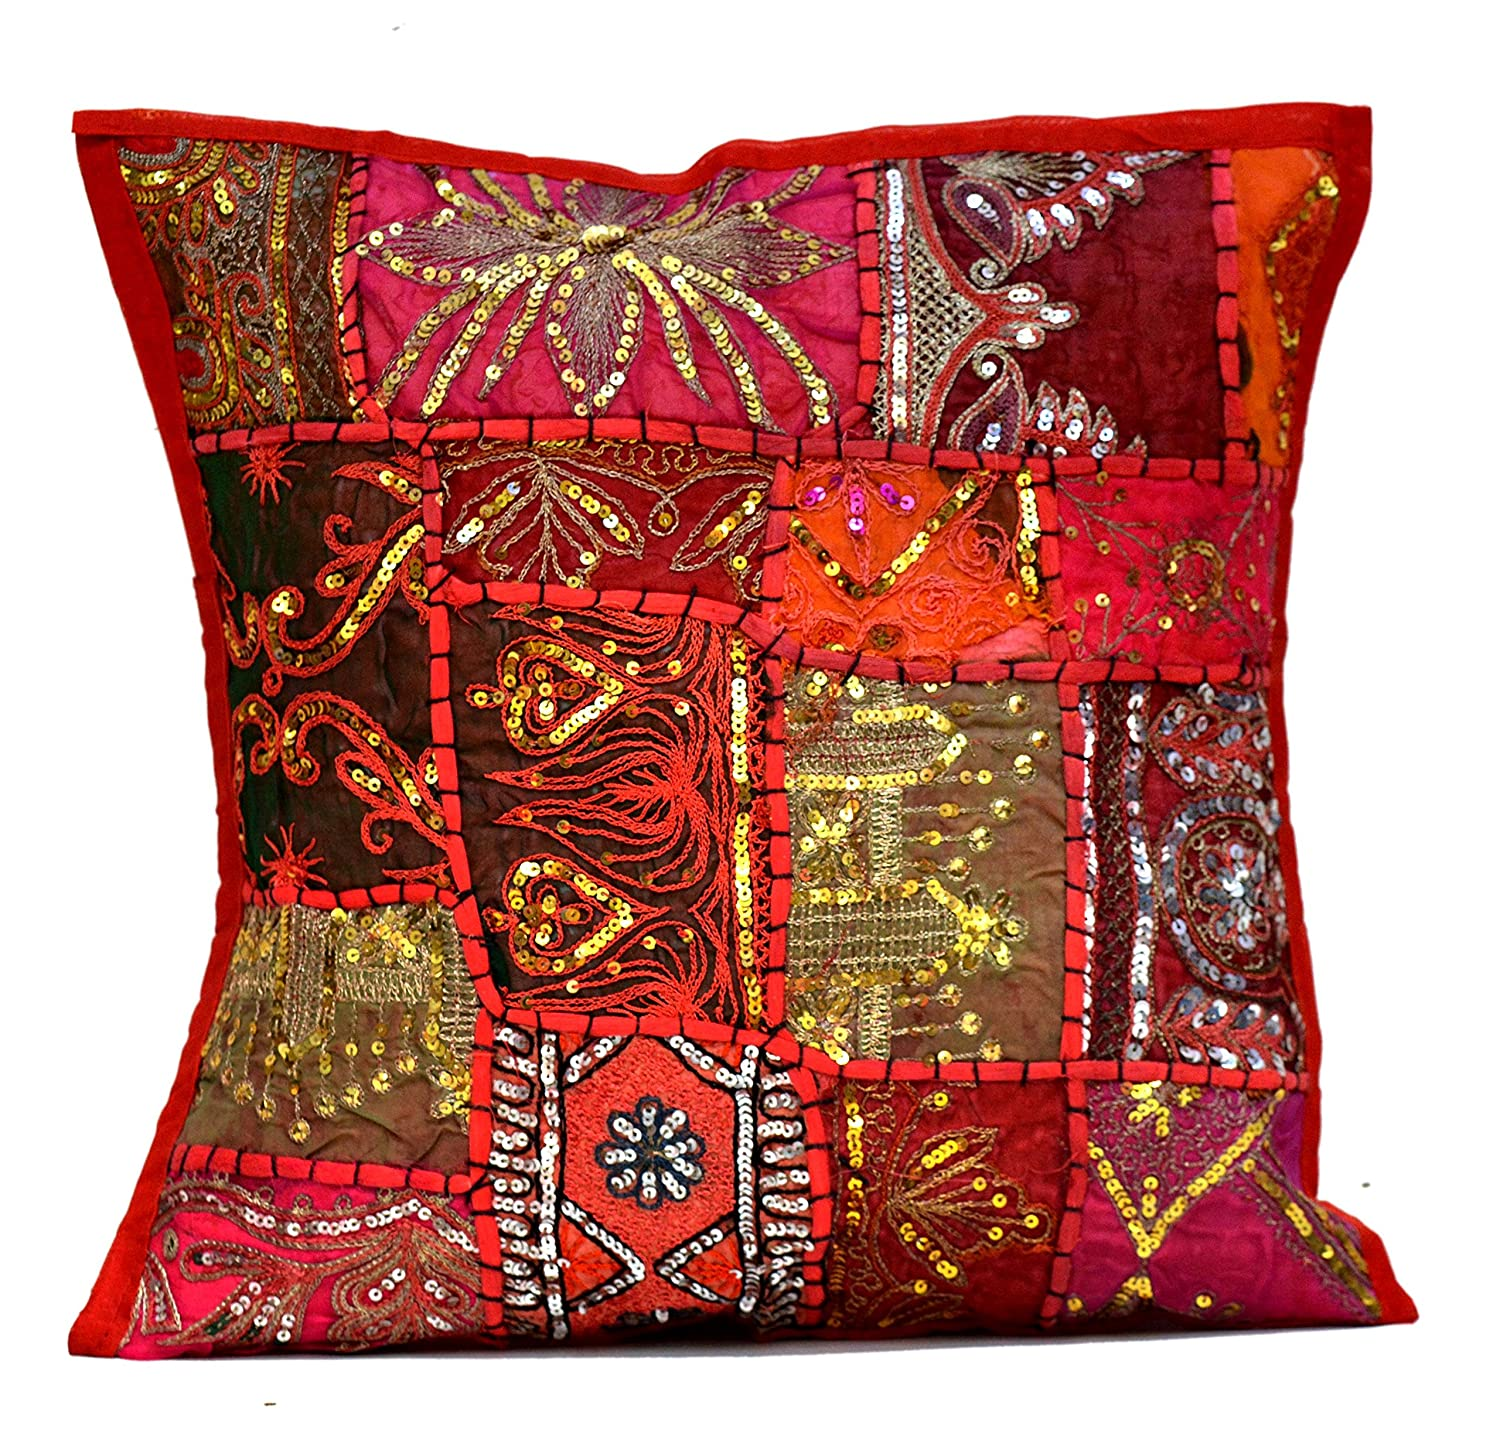 An Ethnic Embroidery Sequin Patchwork Throw Pillow Cases Cushion Cover (Light Green) Amazingindiaonline